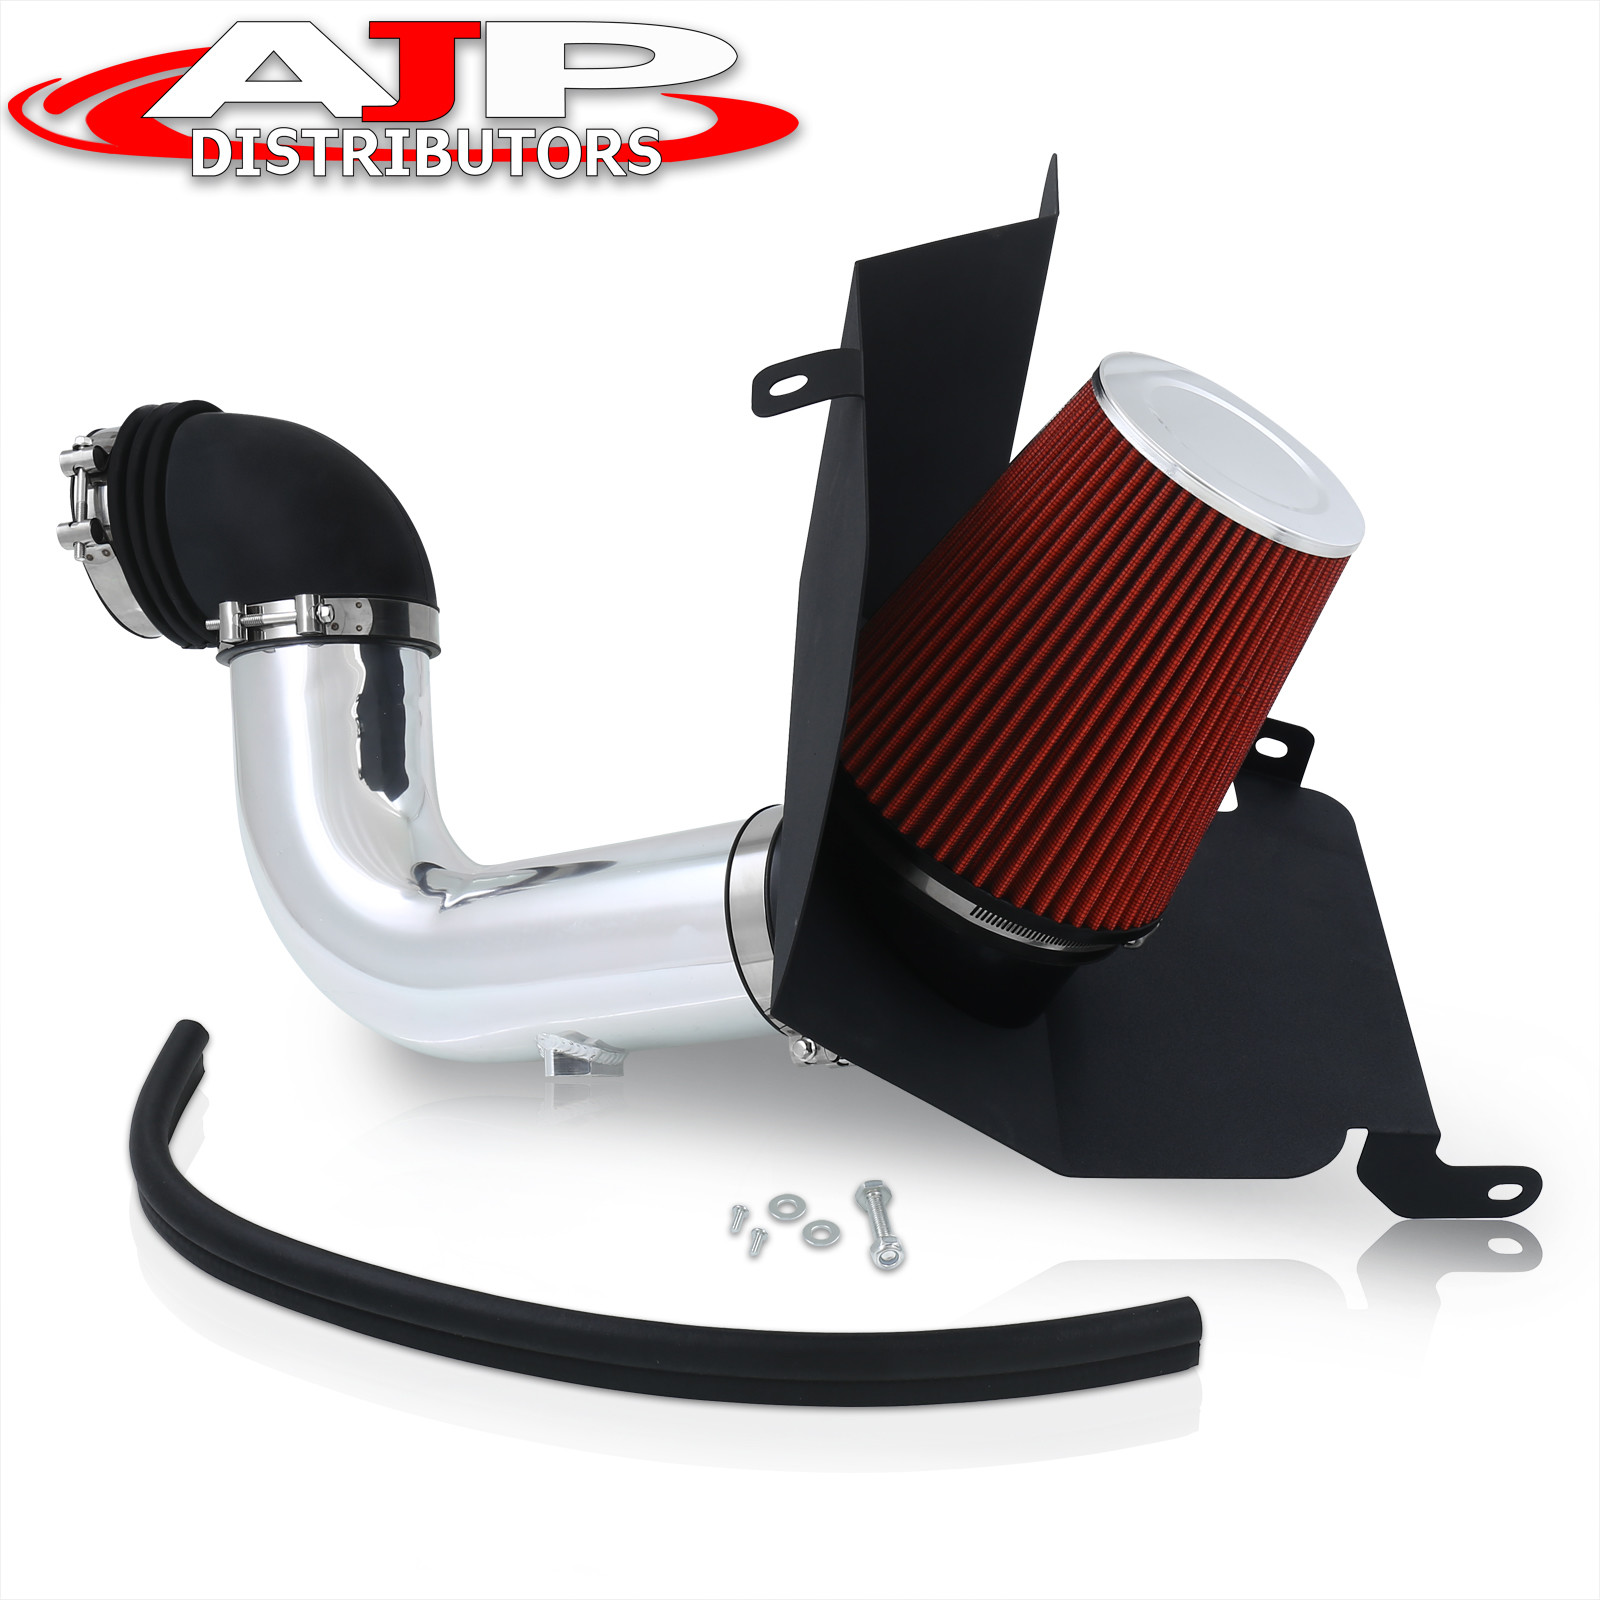 Cold Air Intake System with Heat Shield Kit Filter Combo RED for 03-07 Dodge Ram 2500//3500 5.9L L6 Diesel